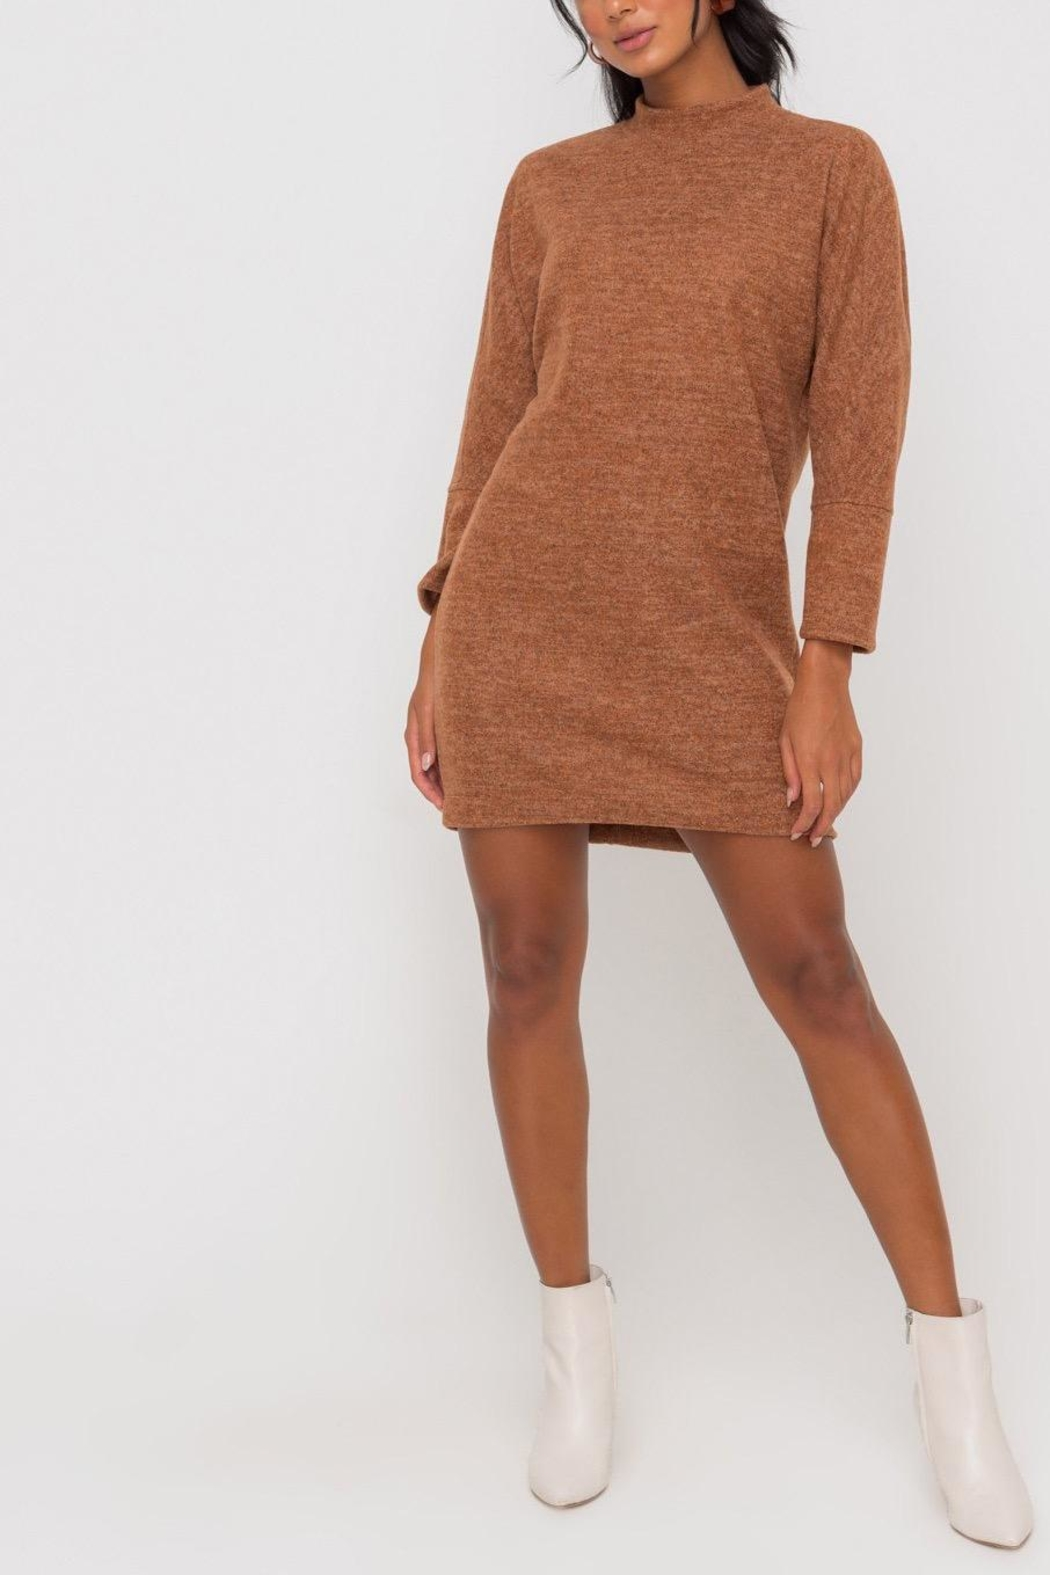 Lush Clothing  Mock-Neck Knit-Dress - Hazel - Front Full Image